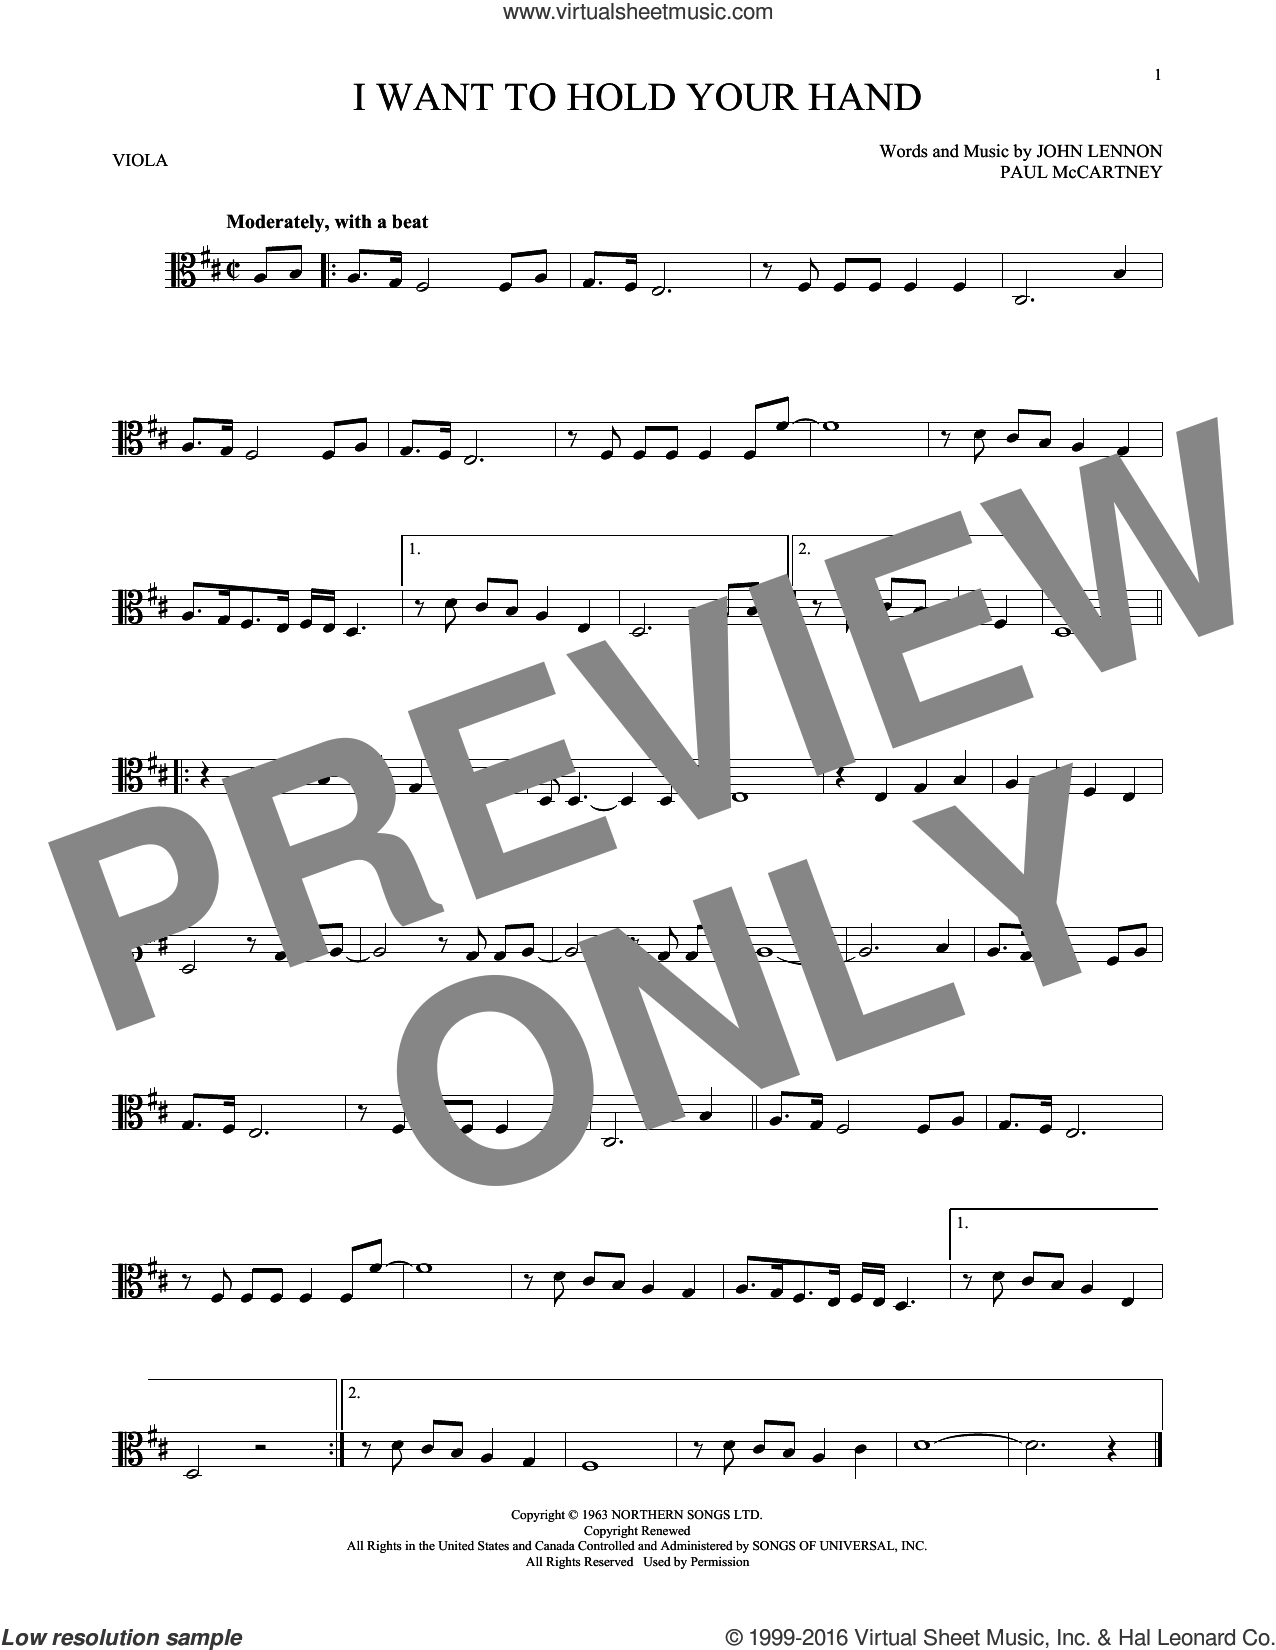 I Want To Hold Your Hand sheet music for viola solo by The Beatles, John Lennon and Paul McCartney, intermediate skill level